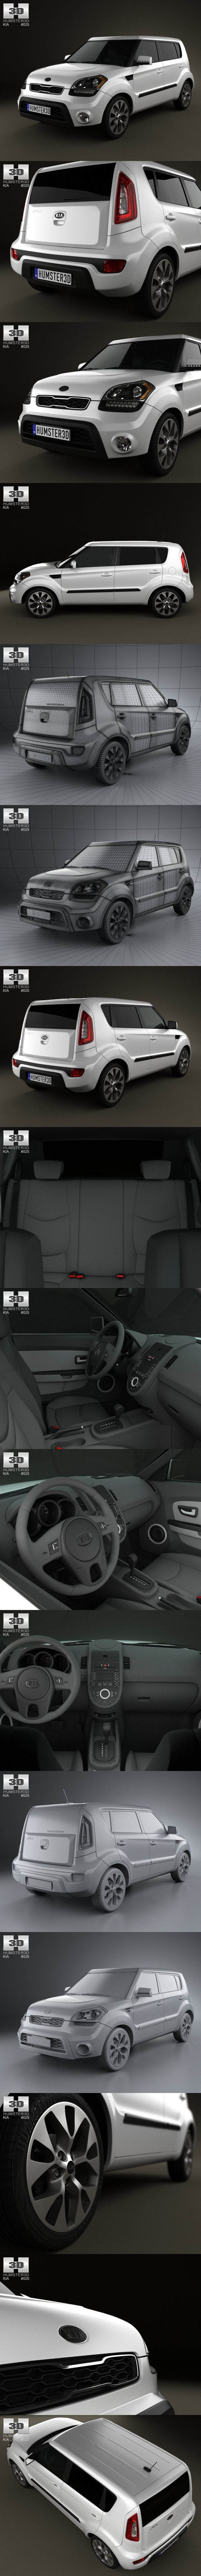 Kia Soul with HQ Interior 2012. 3D Vehicles